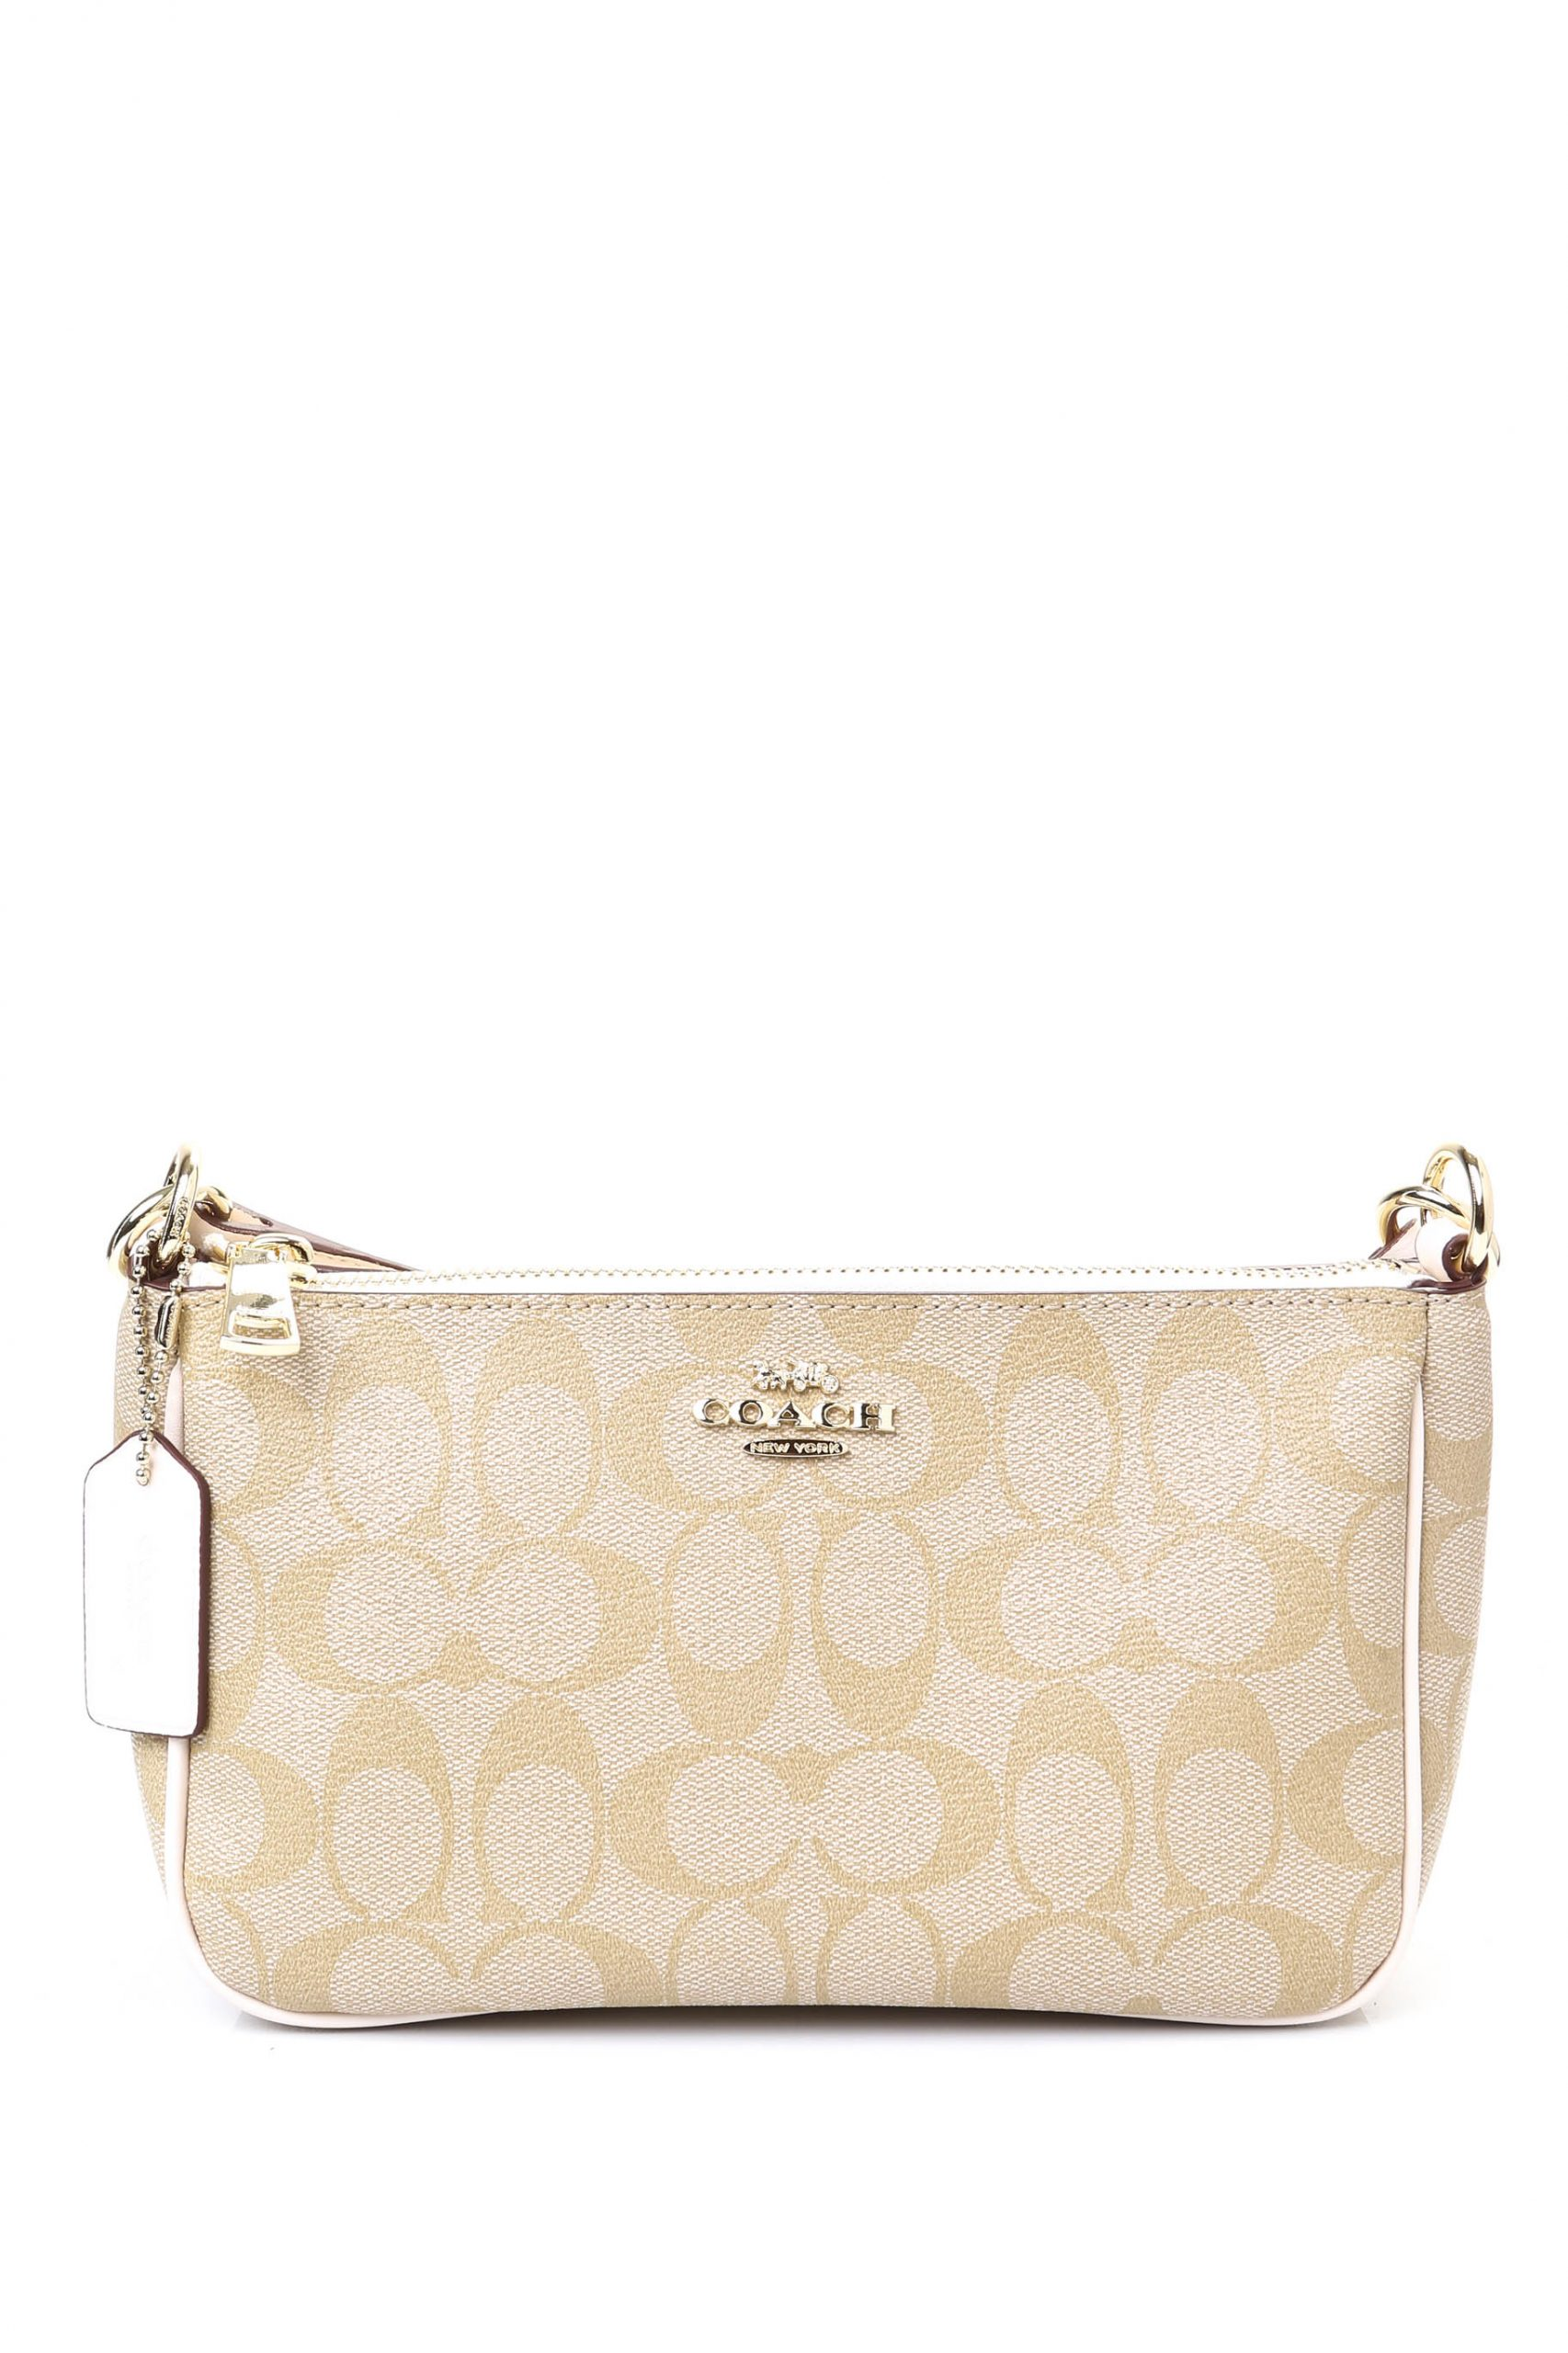 Coach Chelsea In Signature Canvas Sling Bag Cream Chalk The Lifestyle Store